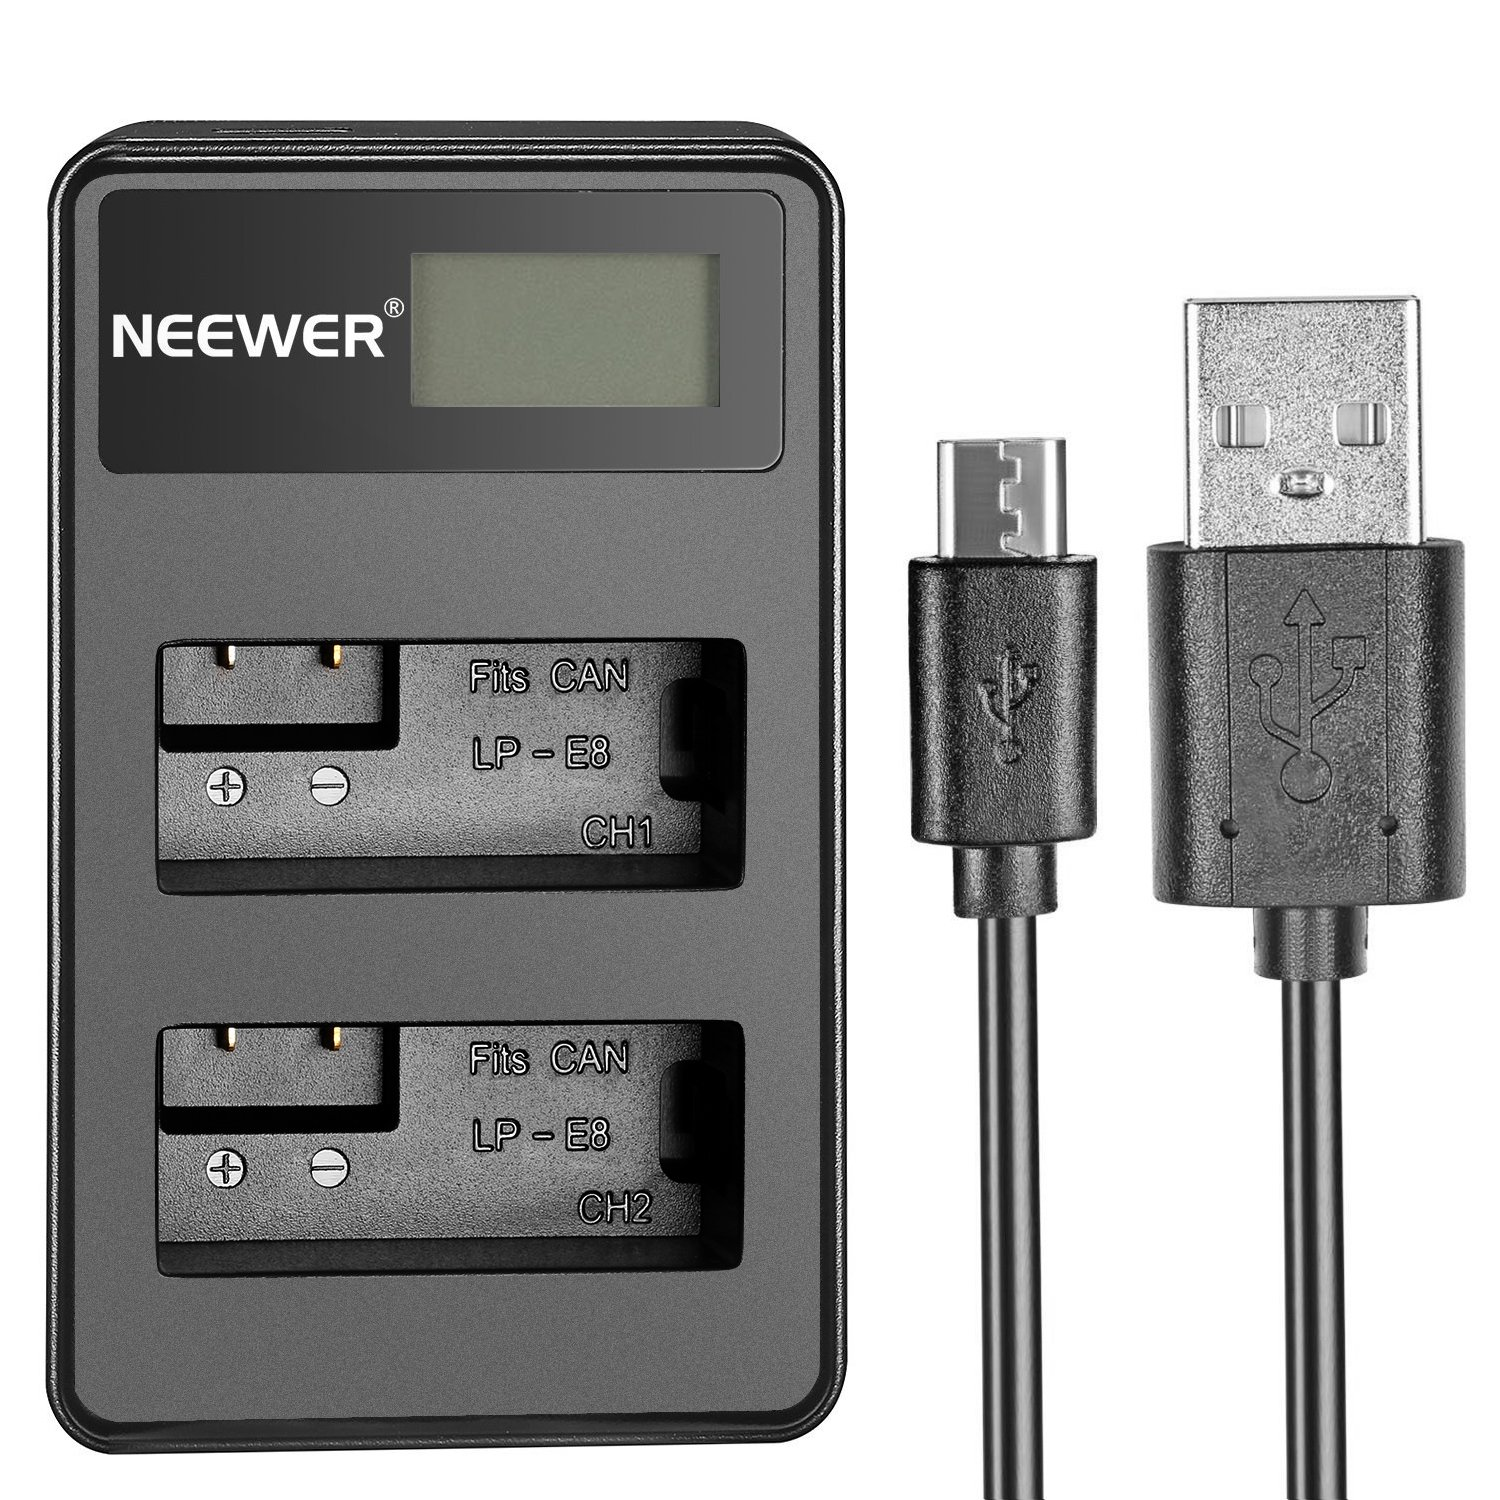 Neewer USB Dual Battery Charger with LED Display 5V/2A Input for Canon LP-E8 Rechargeable Battery, Suitable for Canon EOS Rebel T5i T4i T3i T2i EOS 600D 550D 700D Kiss X5 X7i LC-E8E Cameras,BG-E8 Grip 10089198